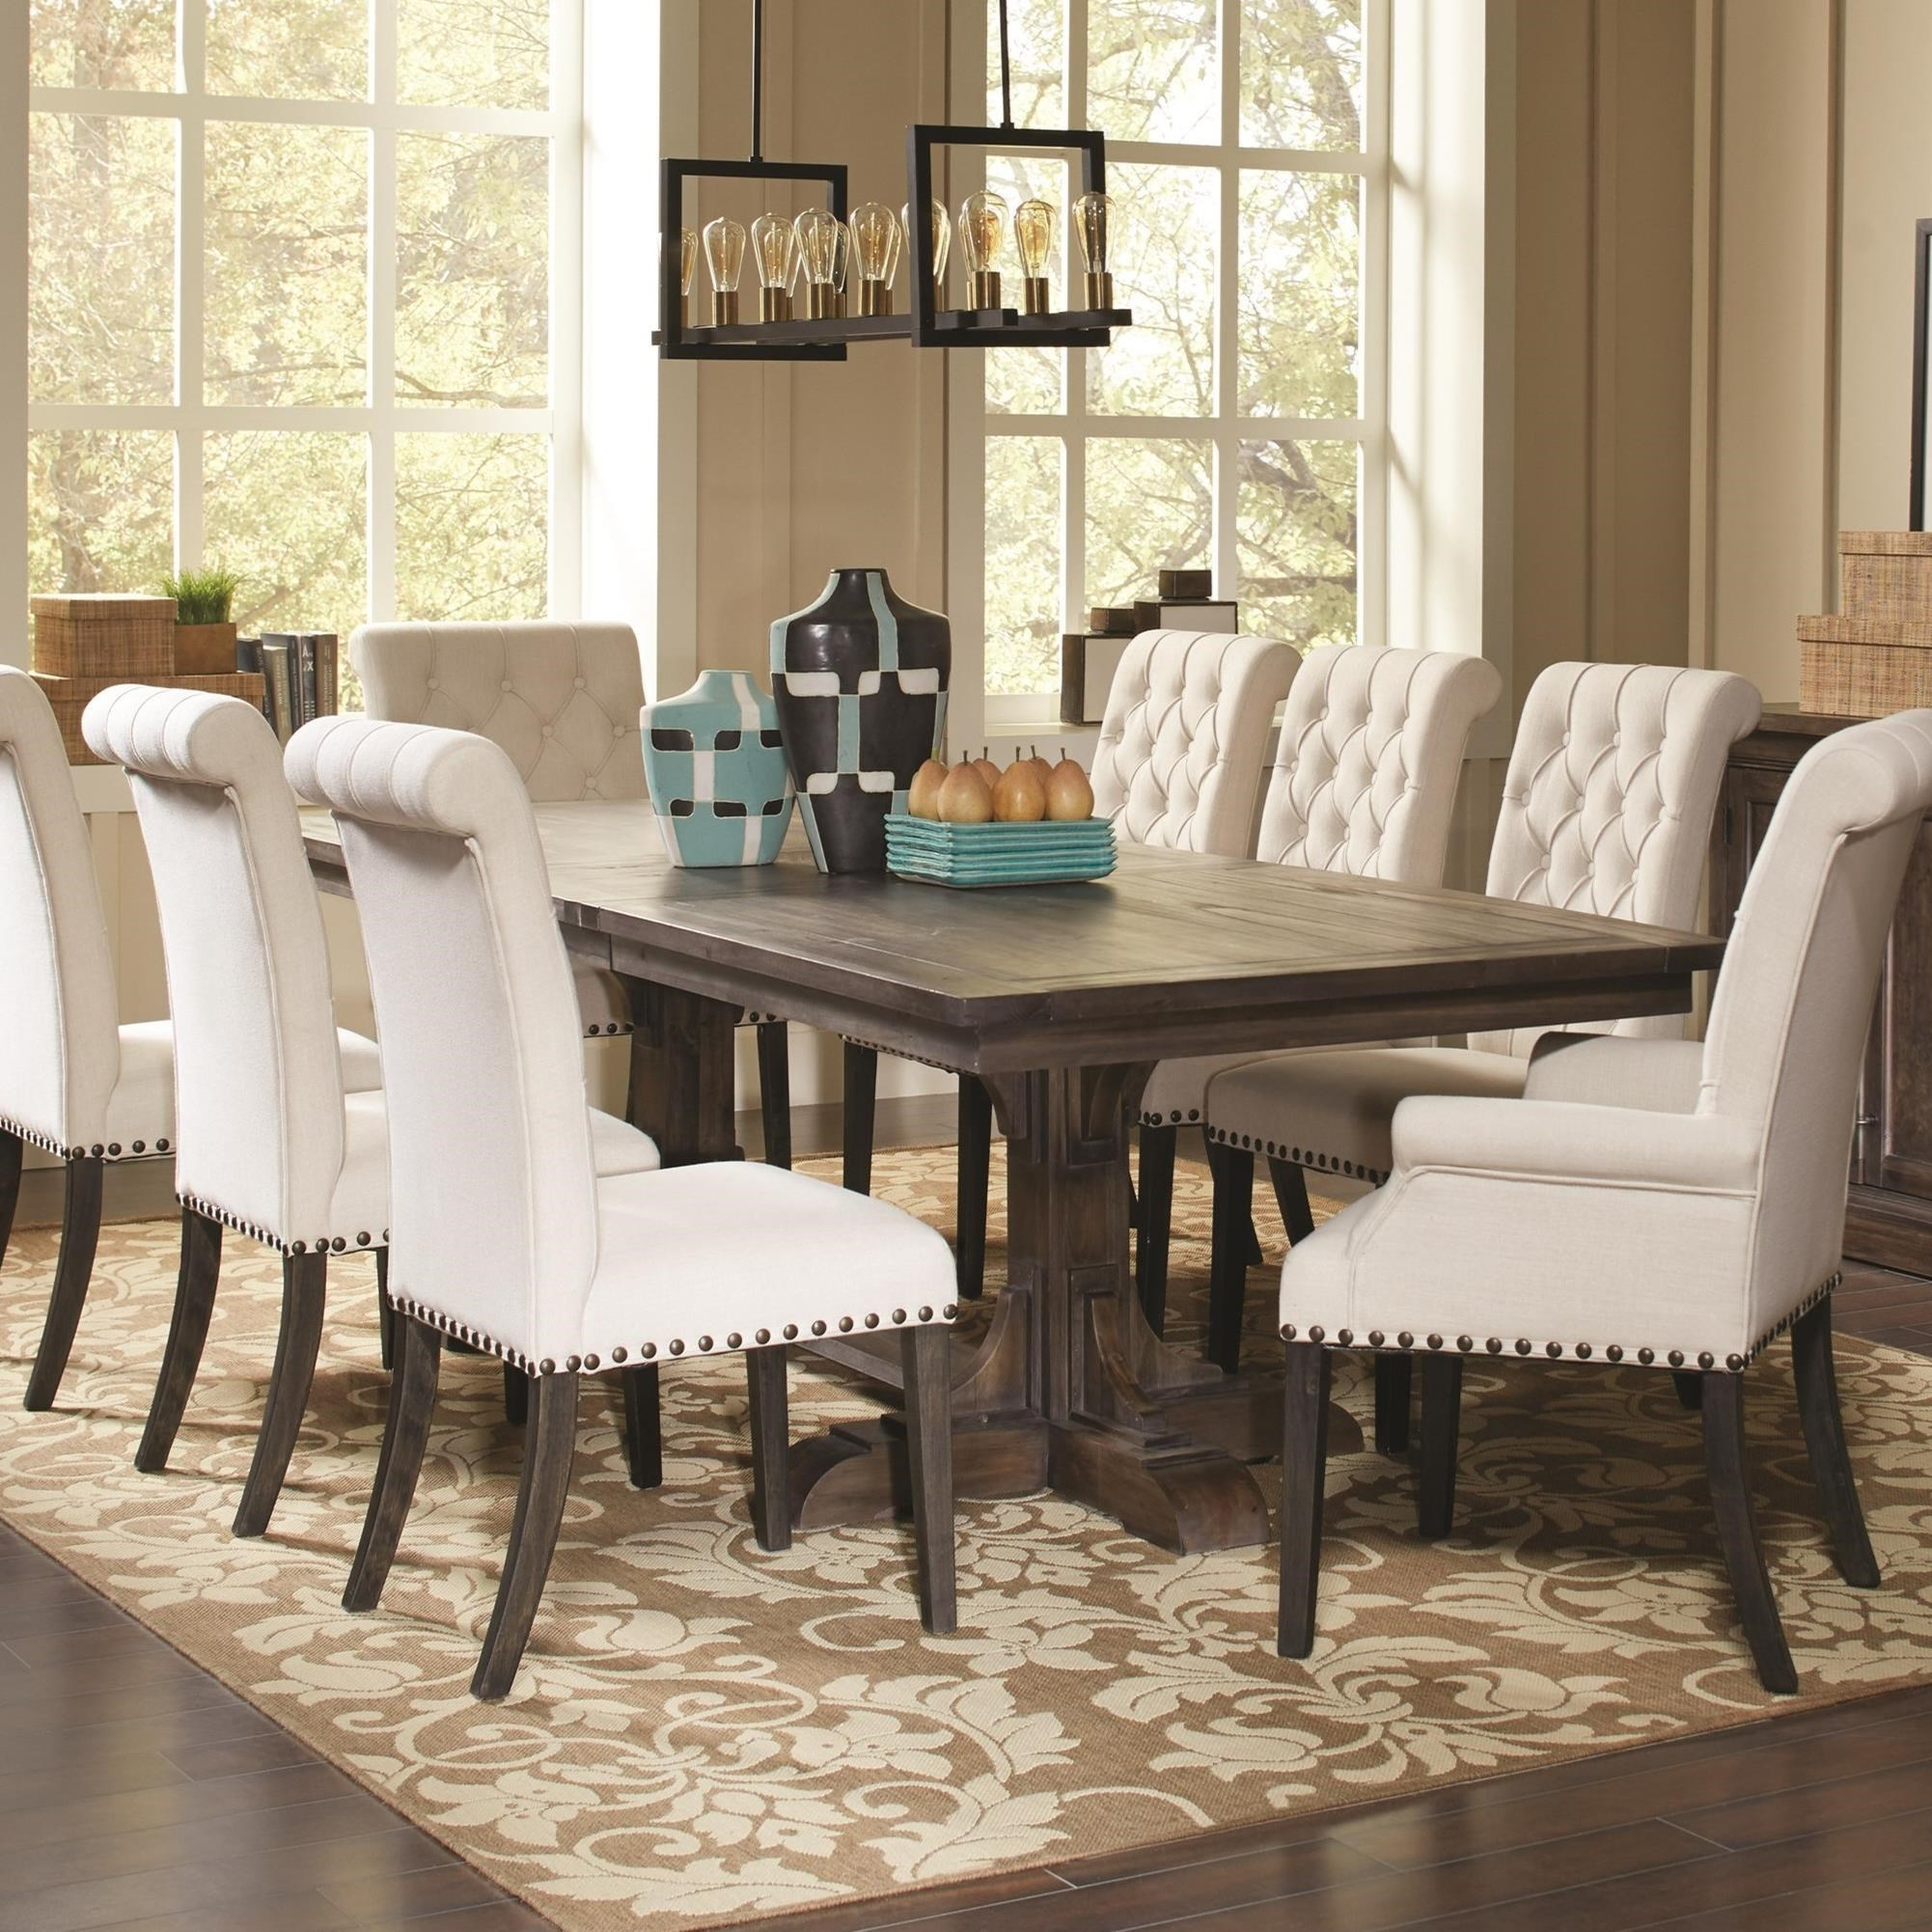 Coaster Weber Traditional Rectangular Dining Table With Ornate Pedestals    Coaster Fine Furniture